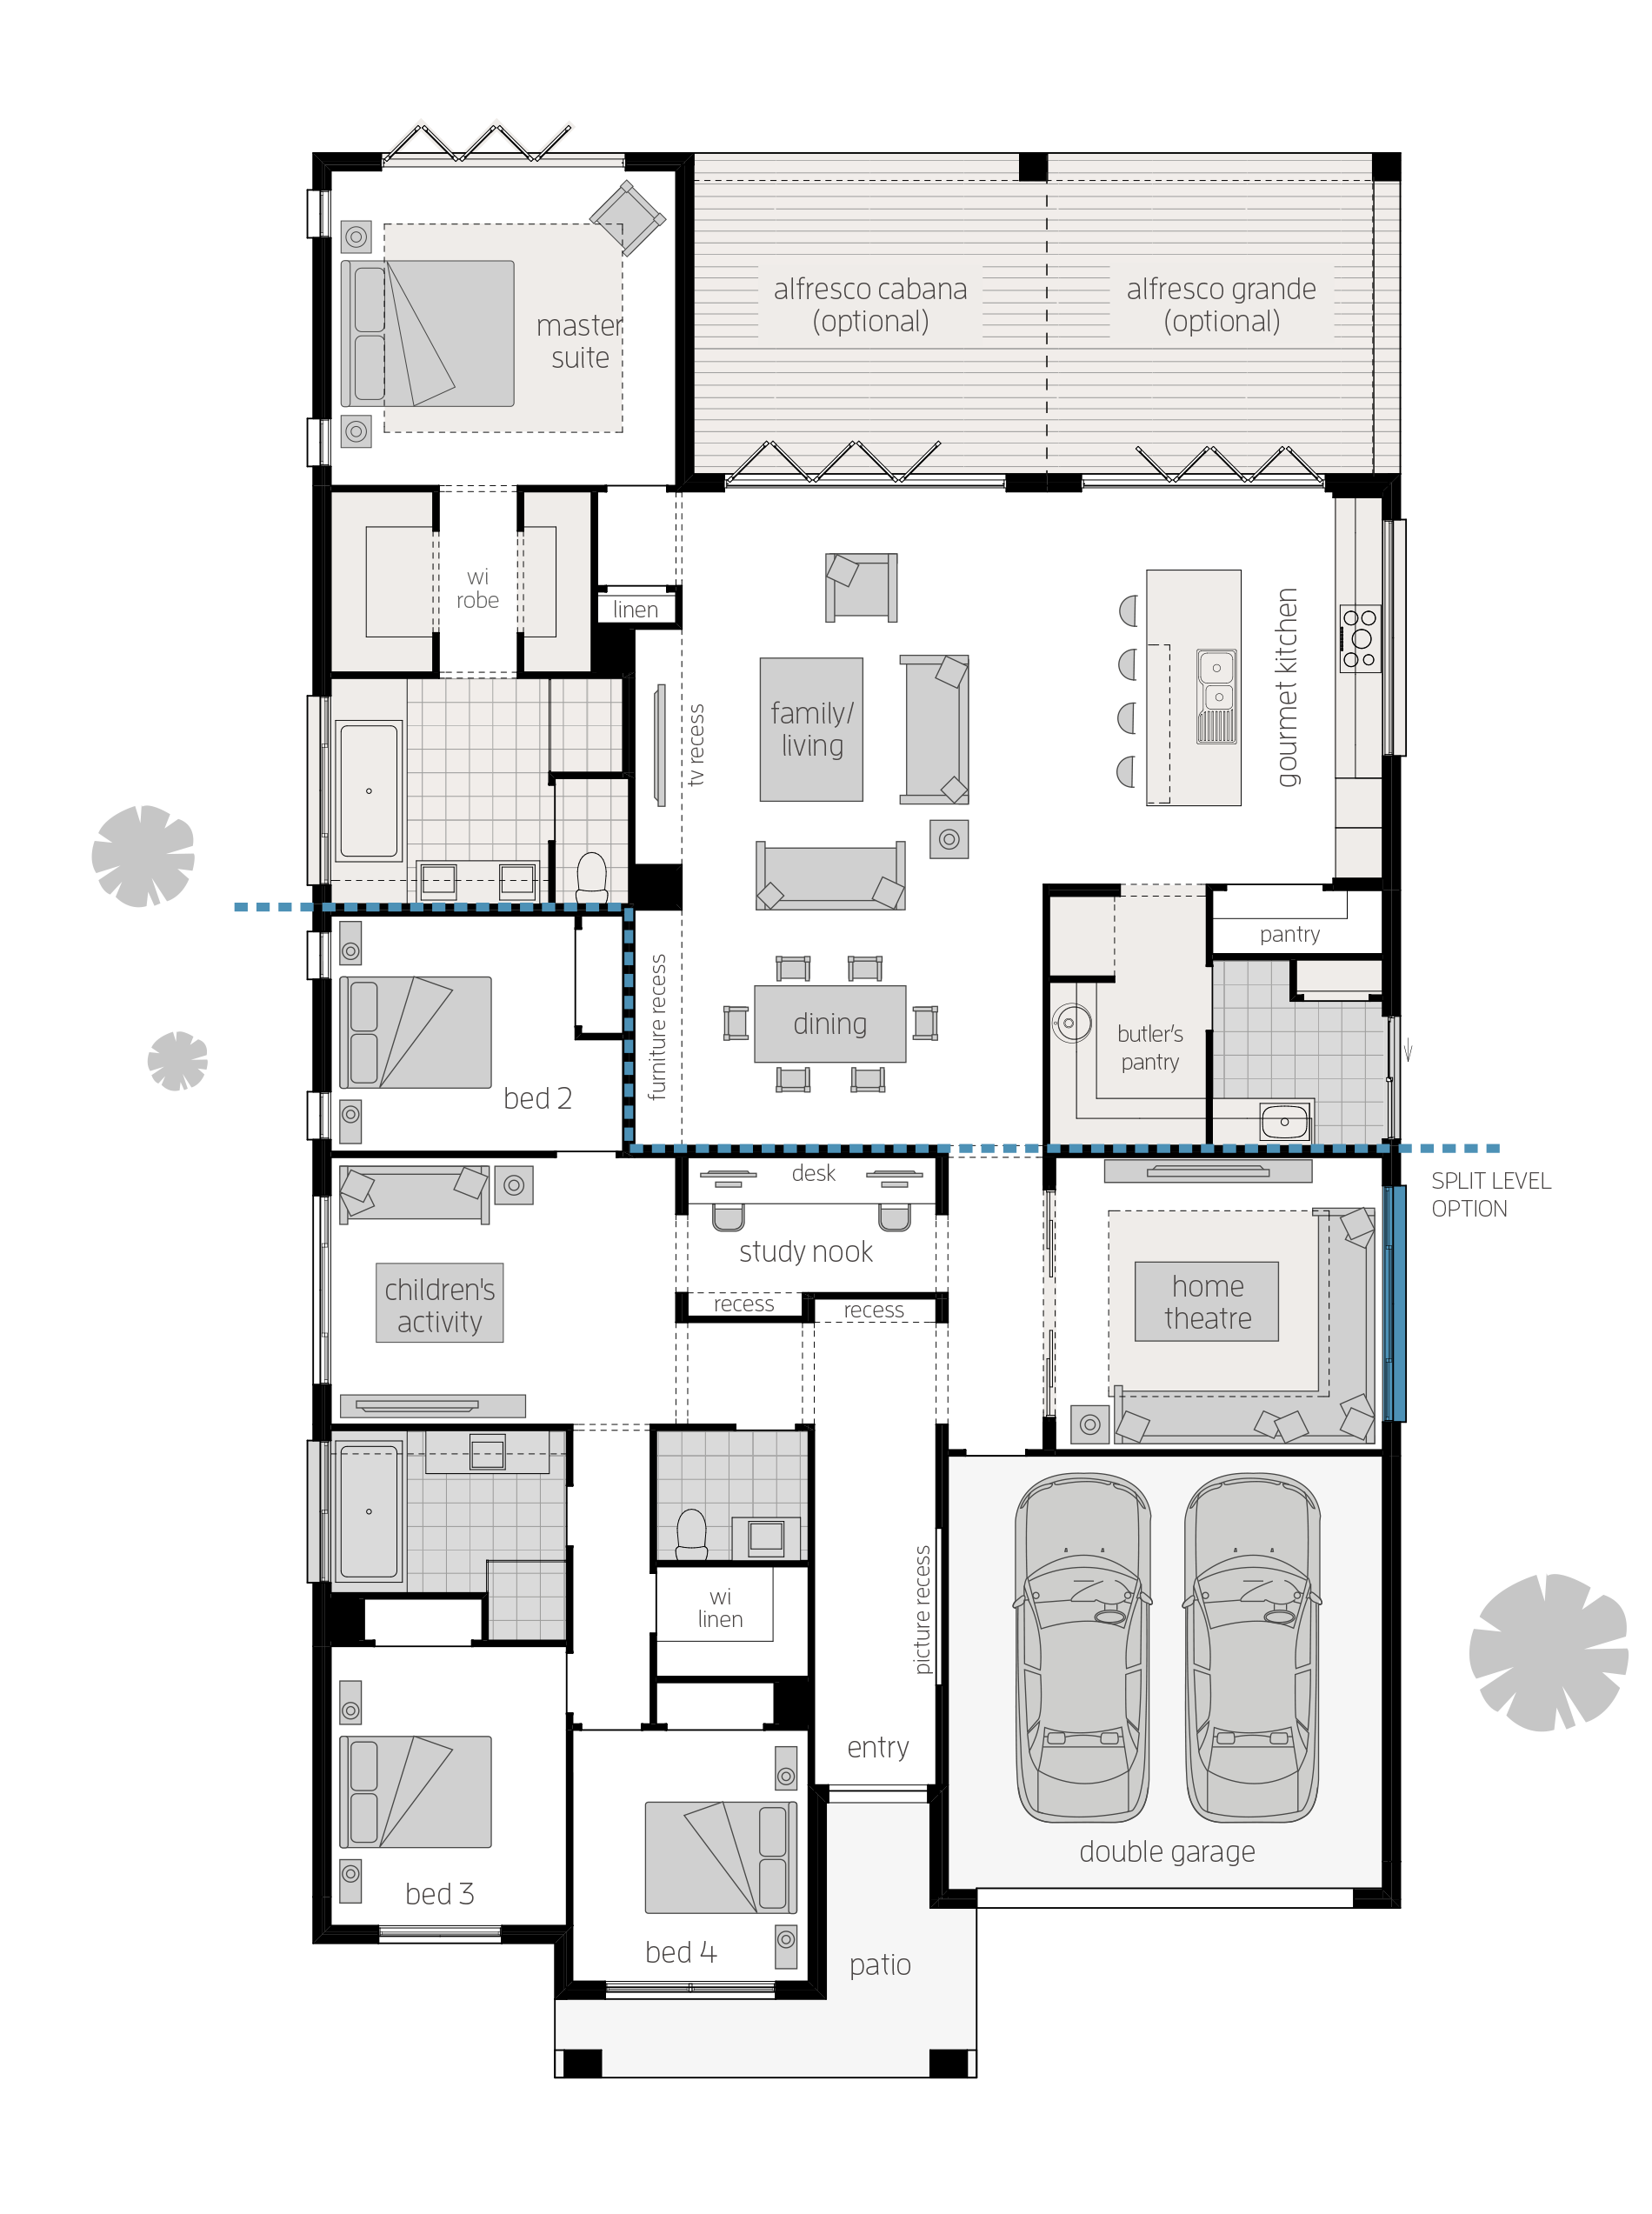 Miami 16 Executive Upgrades Floor Plan By Mcdonald Jones House Floor Plans House Plans Eco House Plans